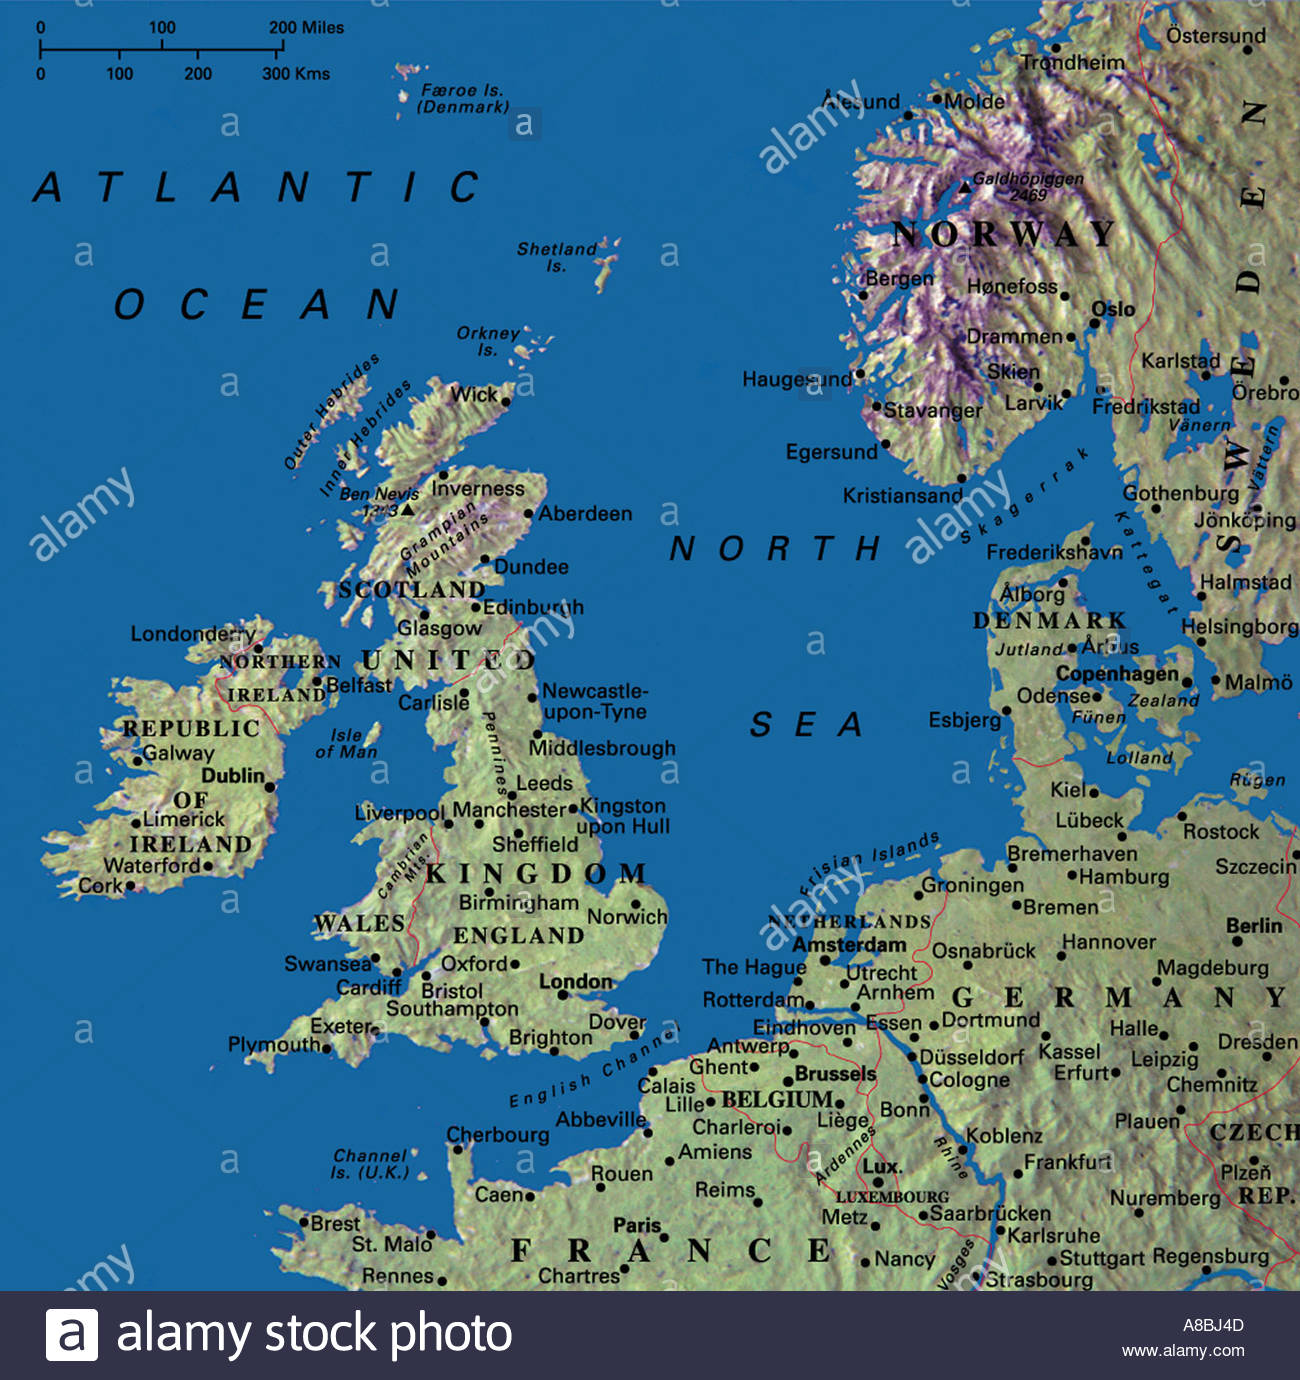 map maps united kingdom england ireland norway denmark germany netherlands belgium stock image